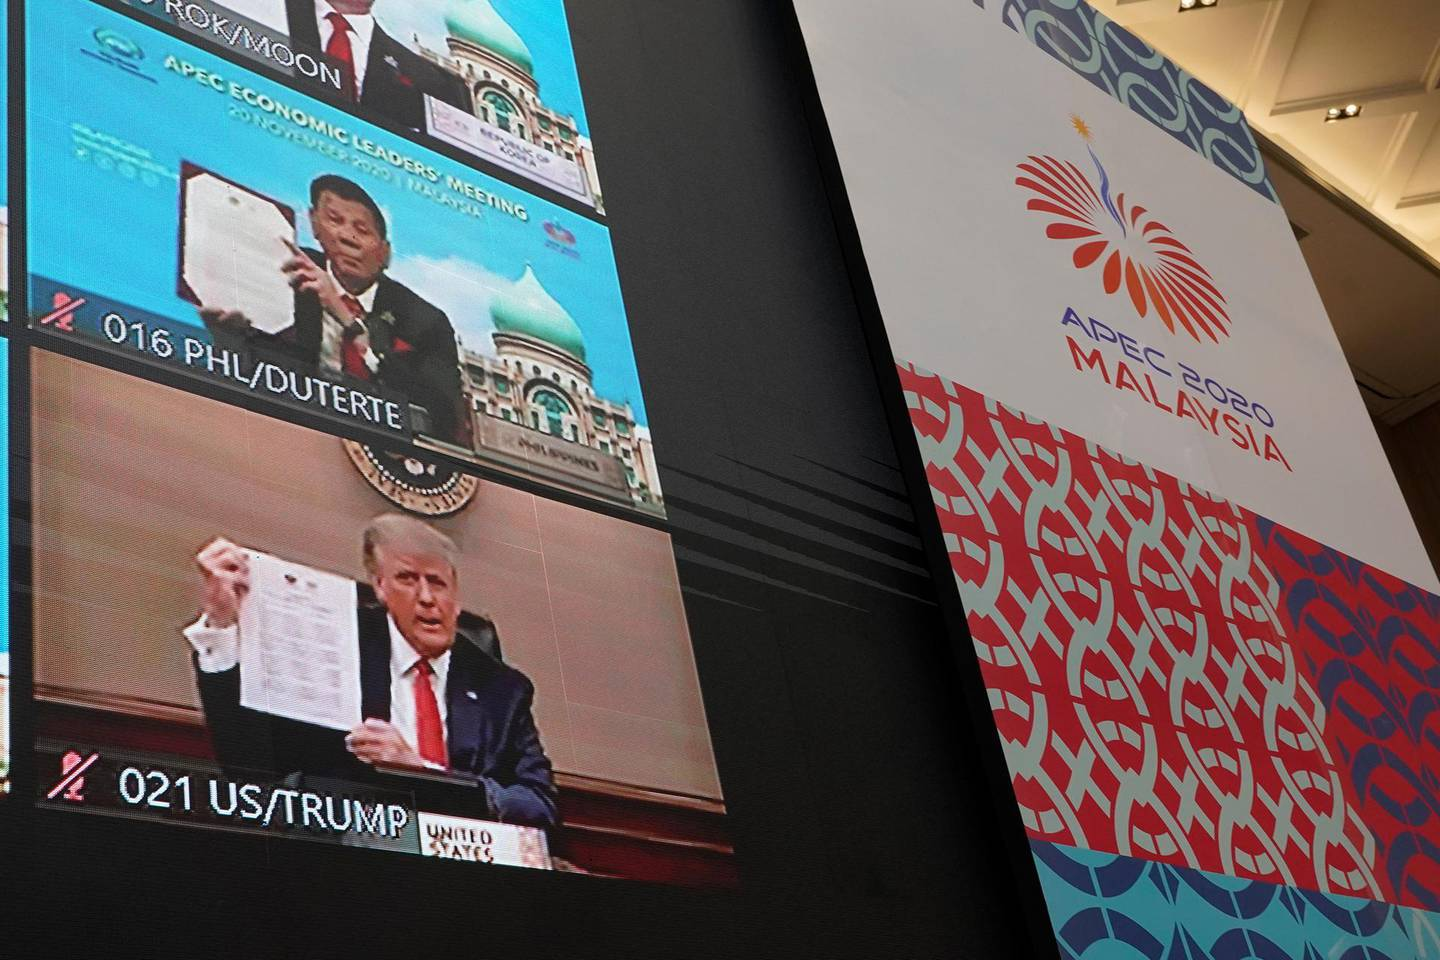 Monitors showing U.S President Donald Trump, left, hold up declaration together with other leaders attending the first virtual Asia-Pacific Economic Cooperation (APEC) leaders' summit, hosted by Malaysia, in Kuala Lumpur, Malaysia, Friday, Nov. 20, 2020. Leaders from the Asia-Pacific Economic Cooperation forum have begun a virtual meeting to seek ways to revive their coronavirus-battered economies, with U.S. President Donald Trump participating for the first time since 2017. (AP Photo/Vincent Thian)